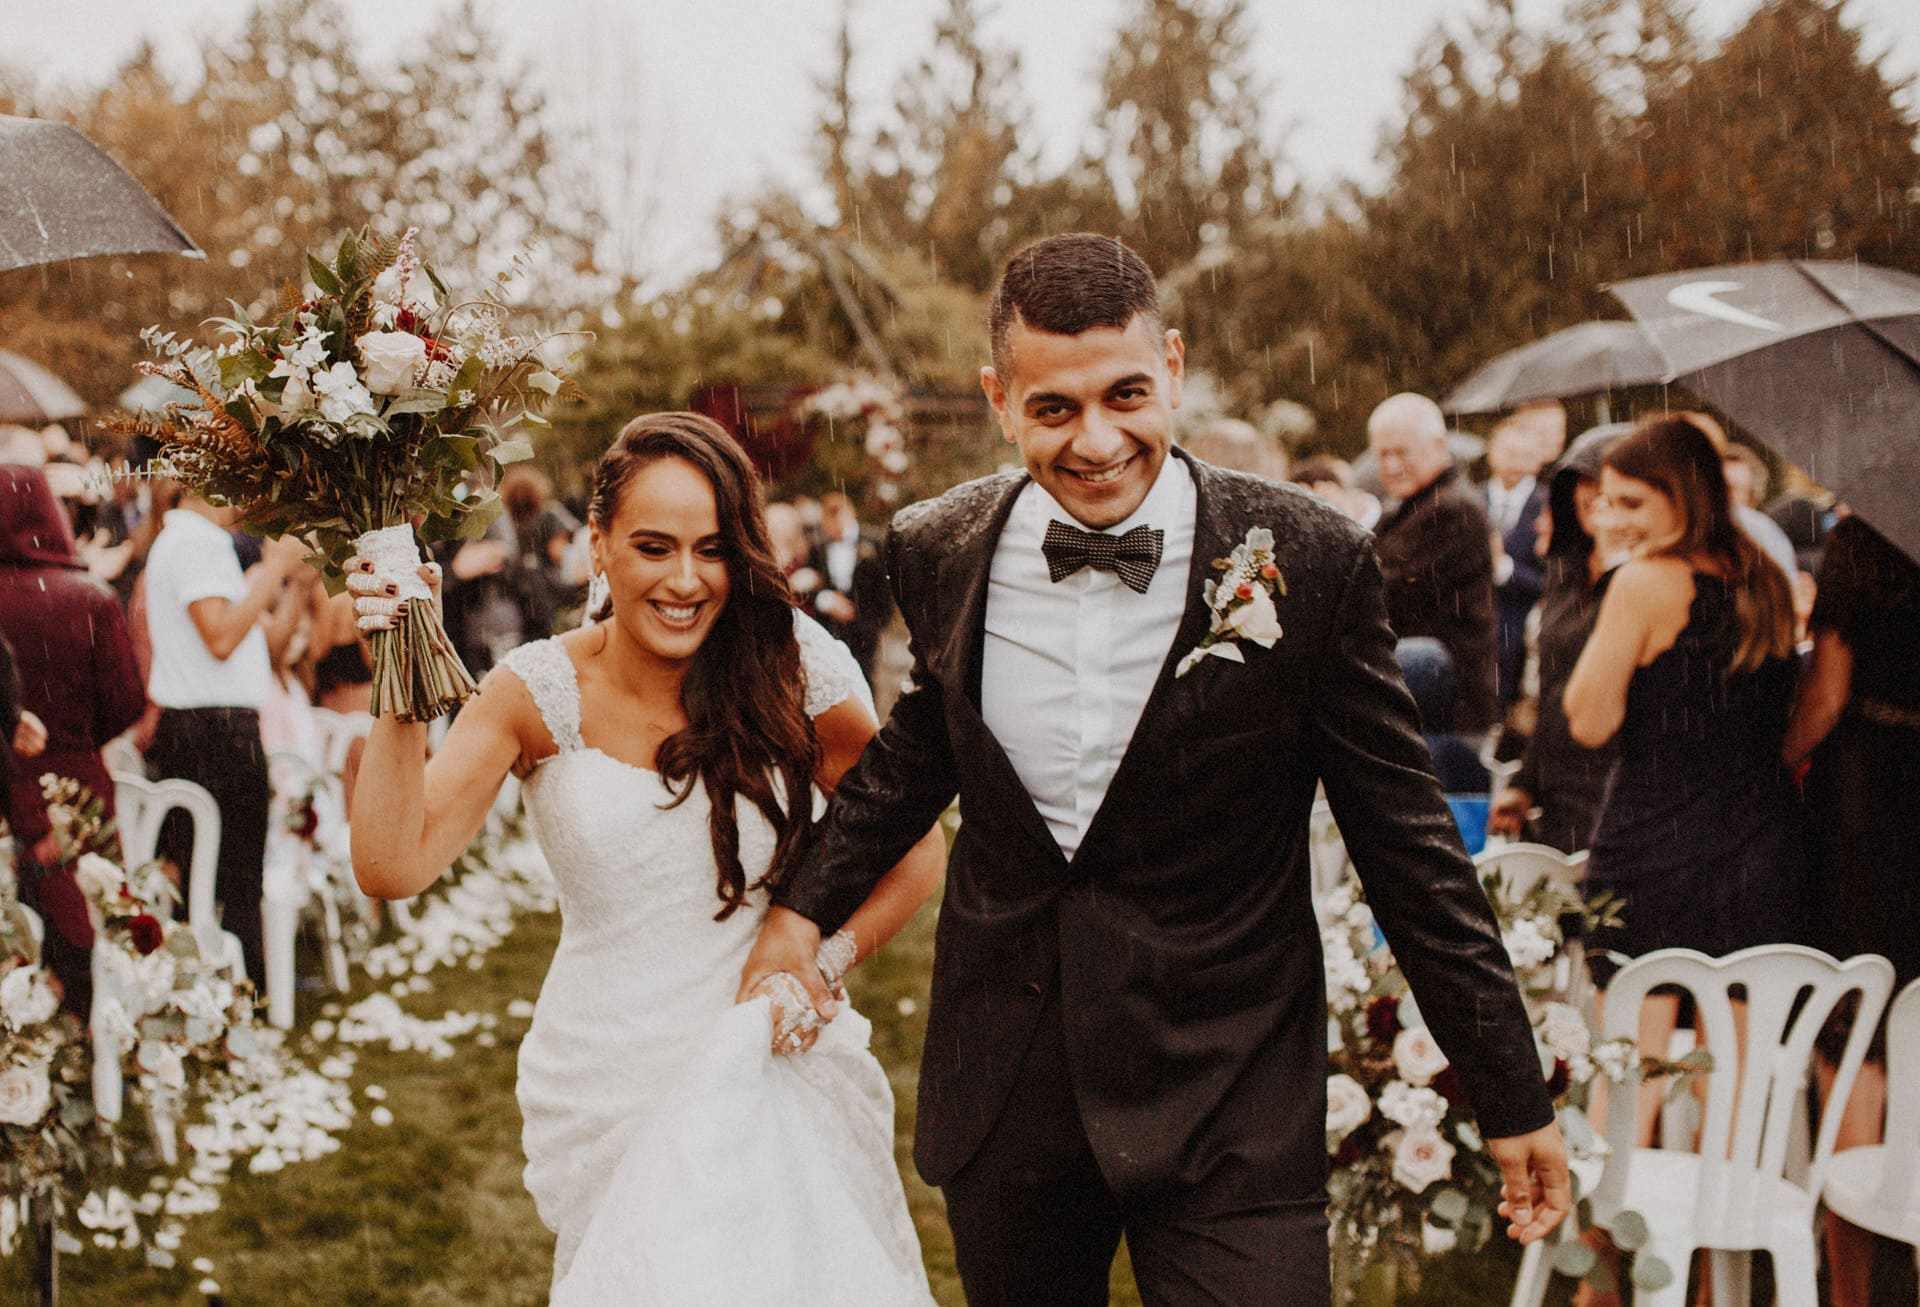 A bride and groom walk down the aisle after getting married at the Oregon Garden Resort